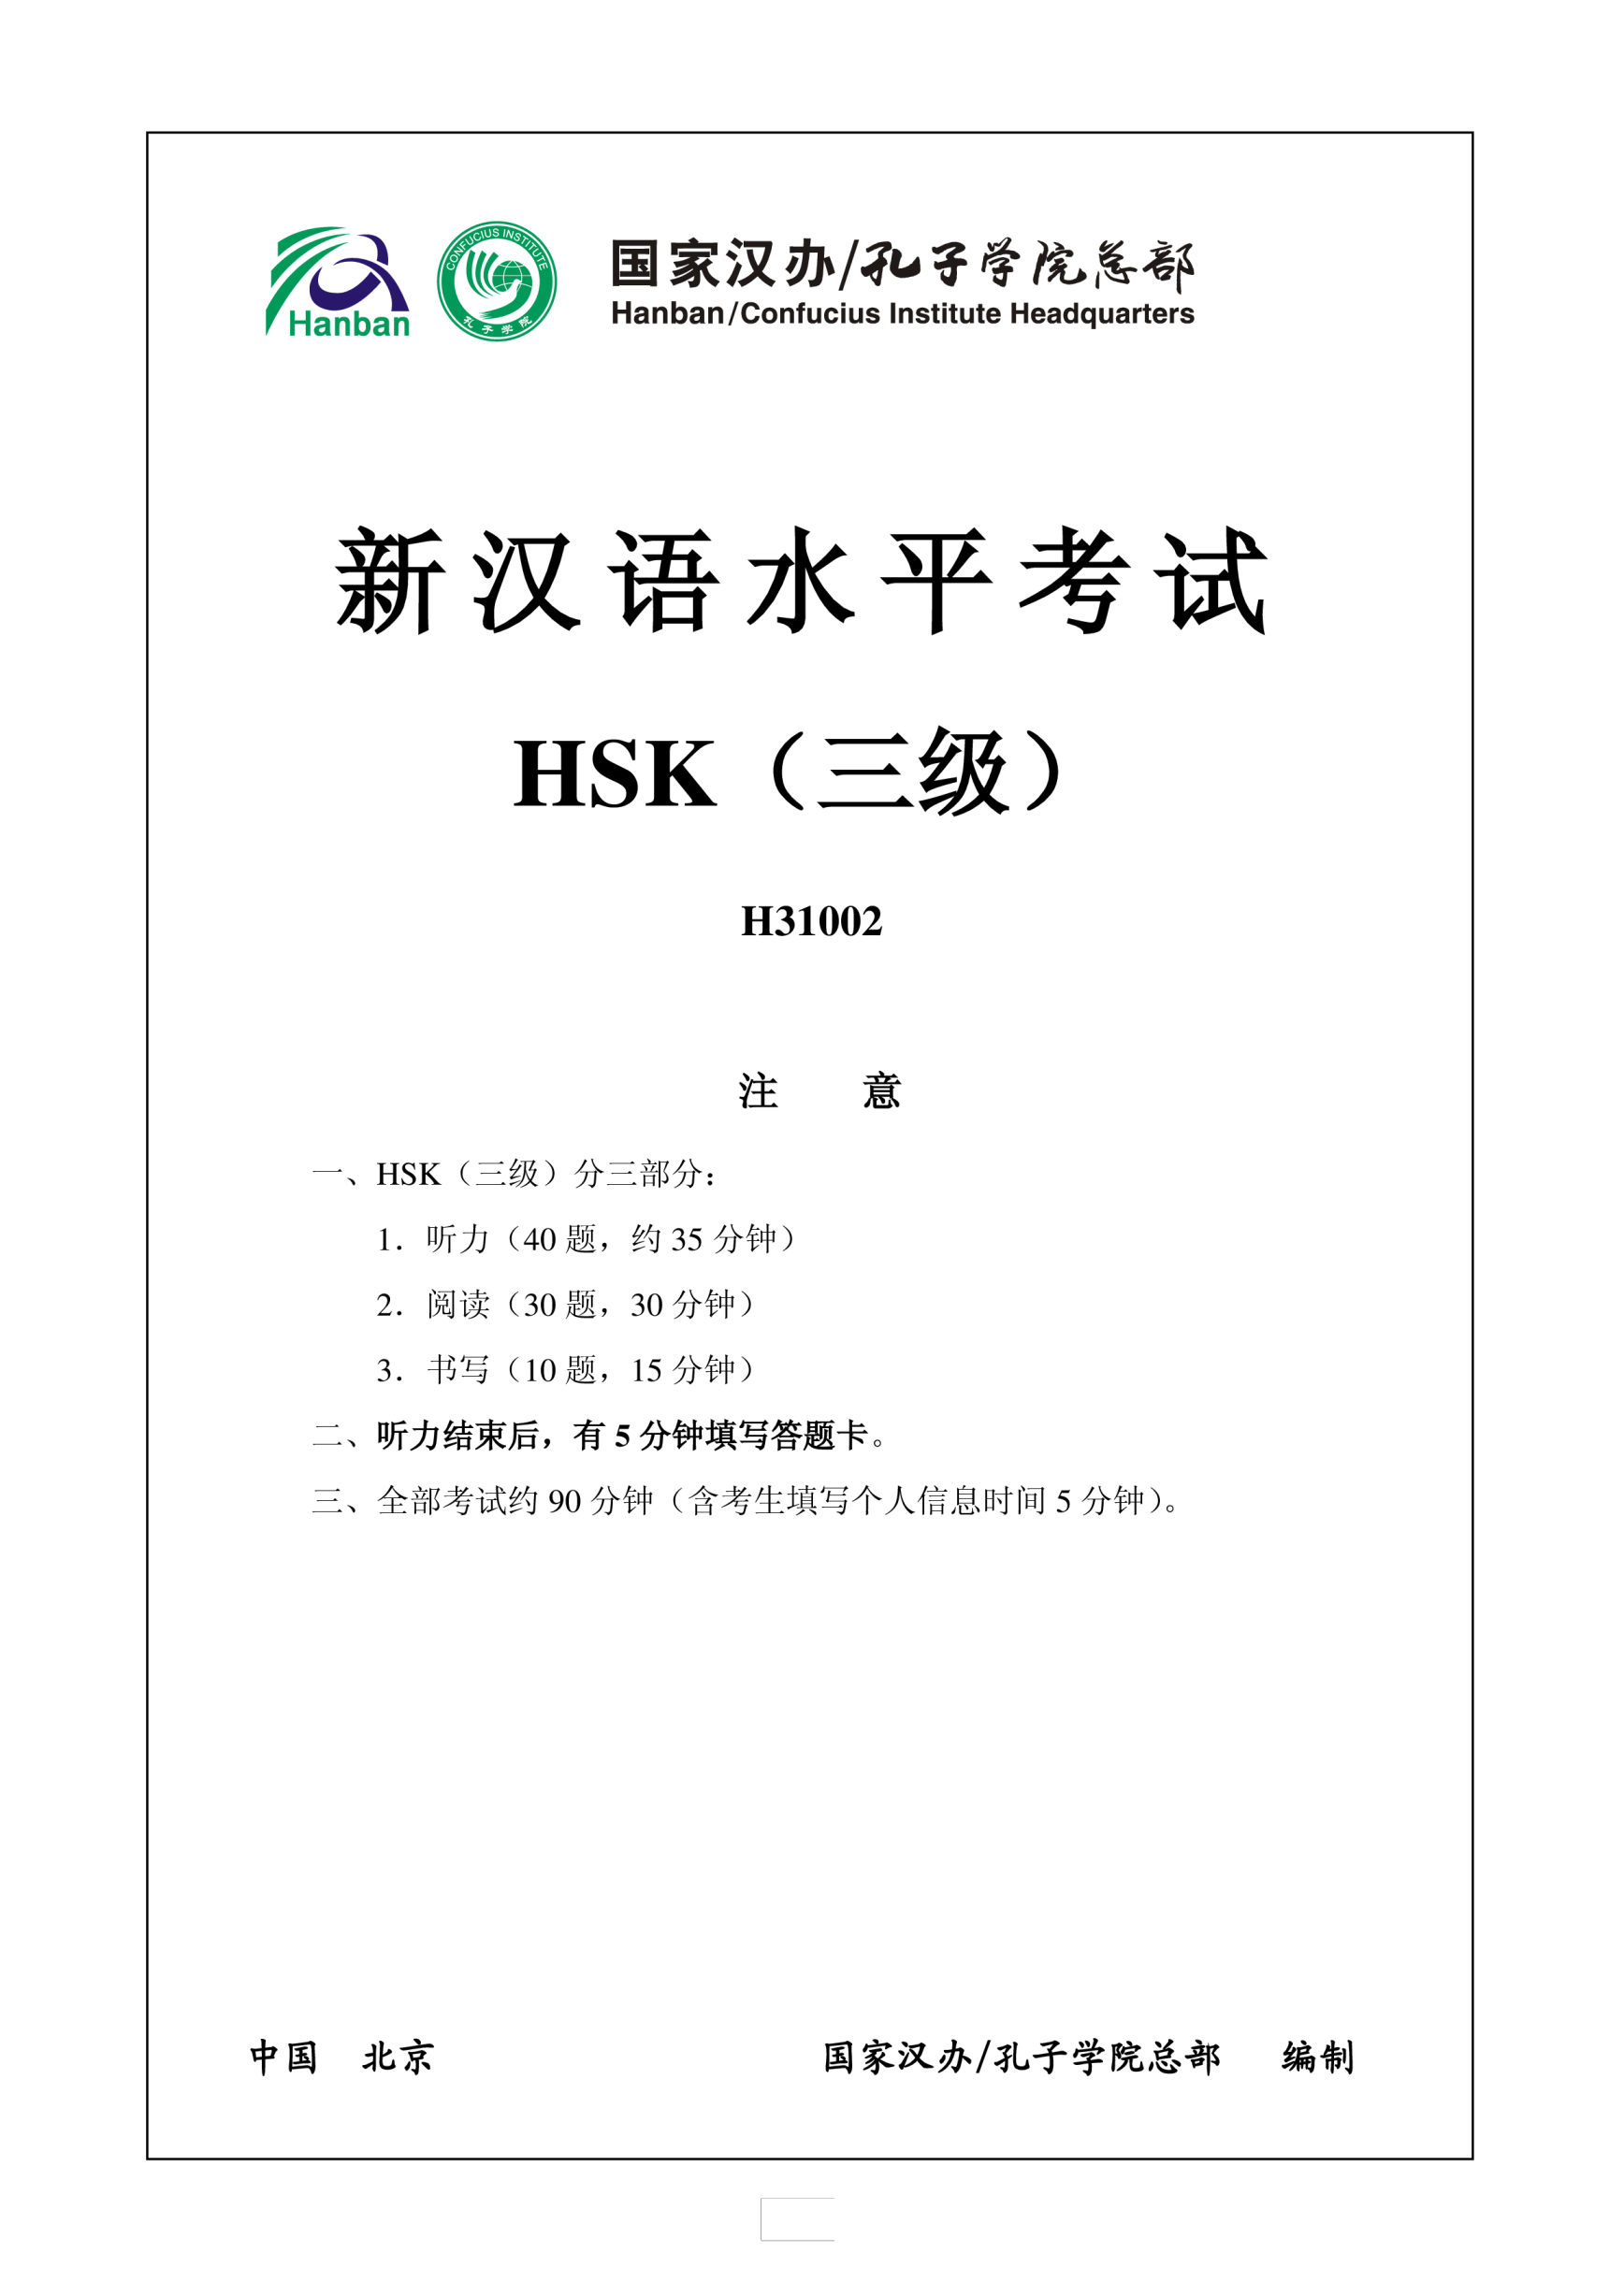 template preview imageHSK3 Chinese Exam including Answers # HSK3 H31002